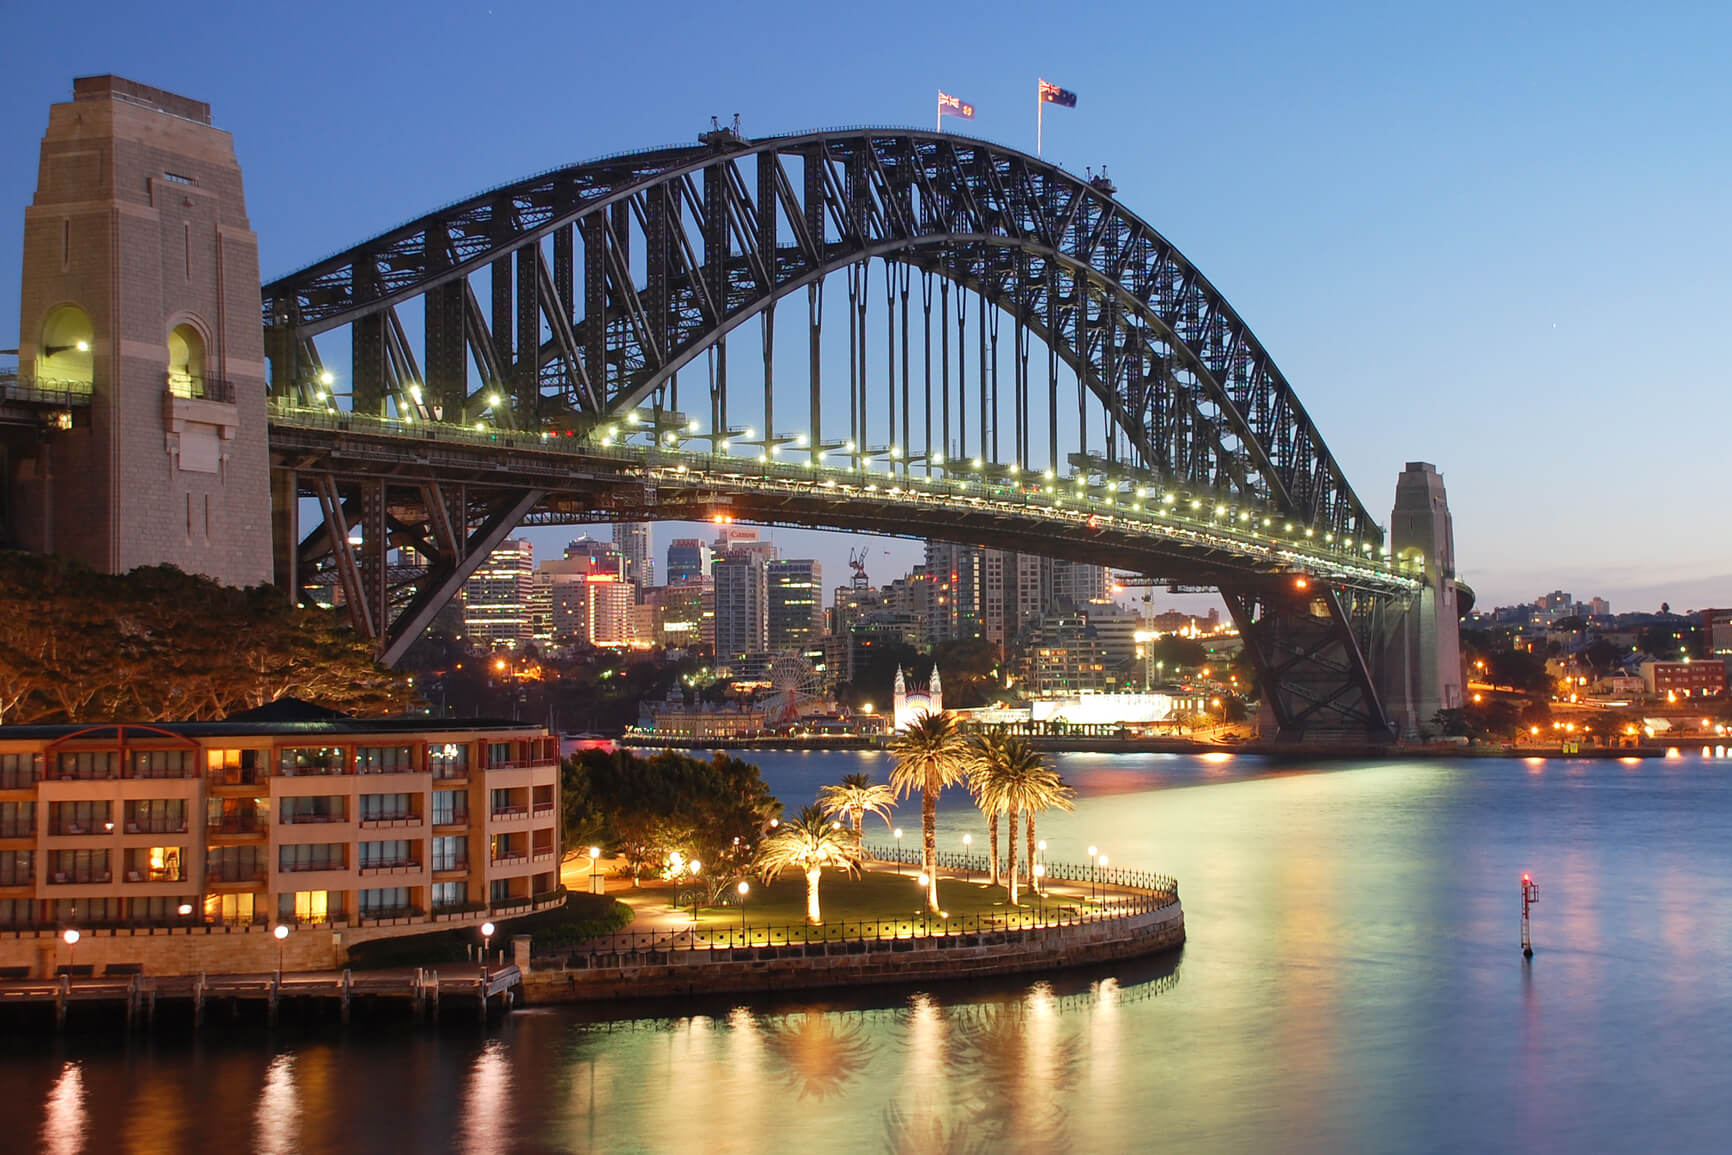 New York to Sydney, Australia for only $780 roundtrip